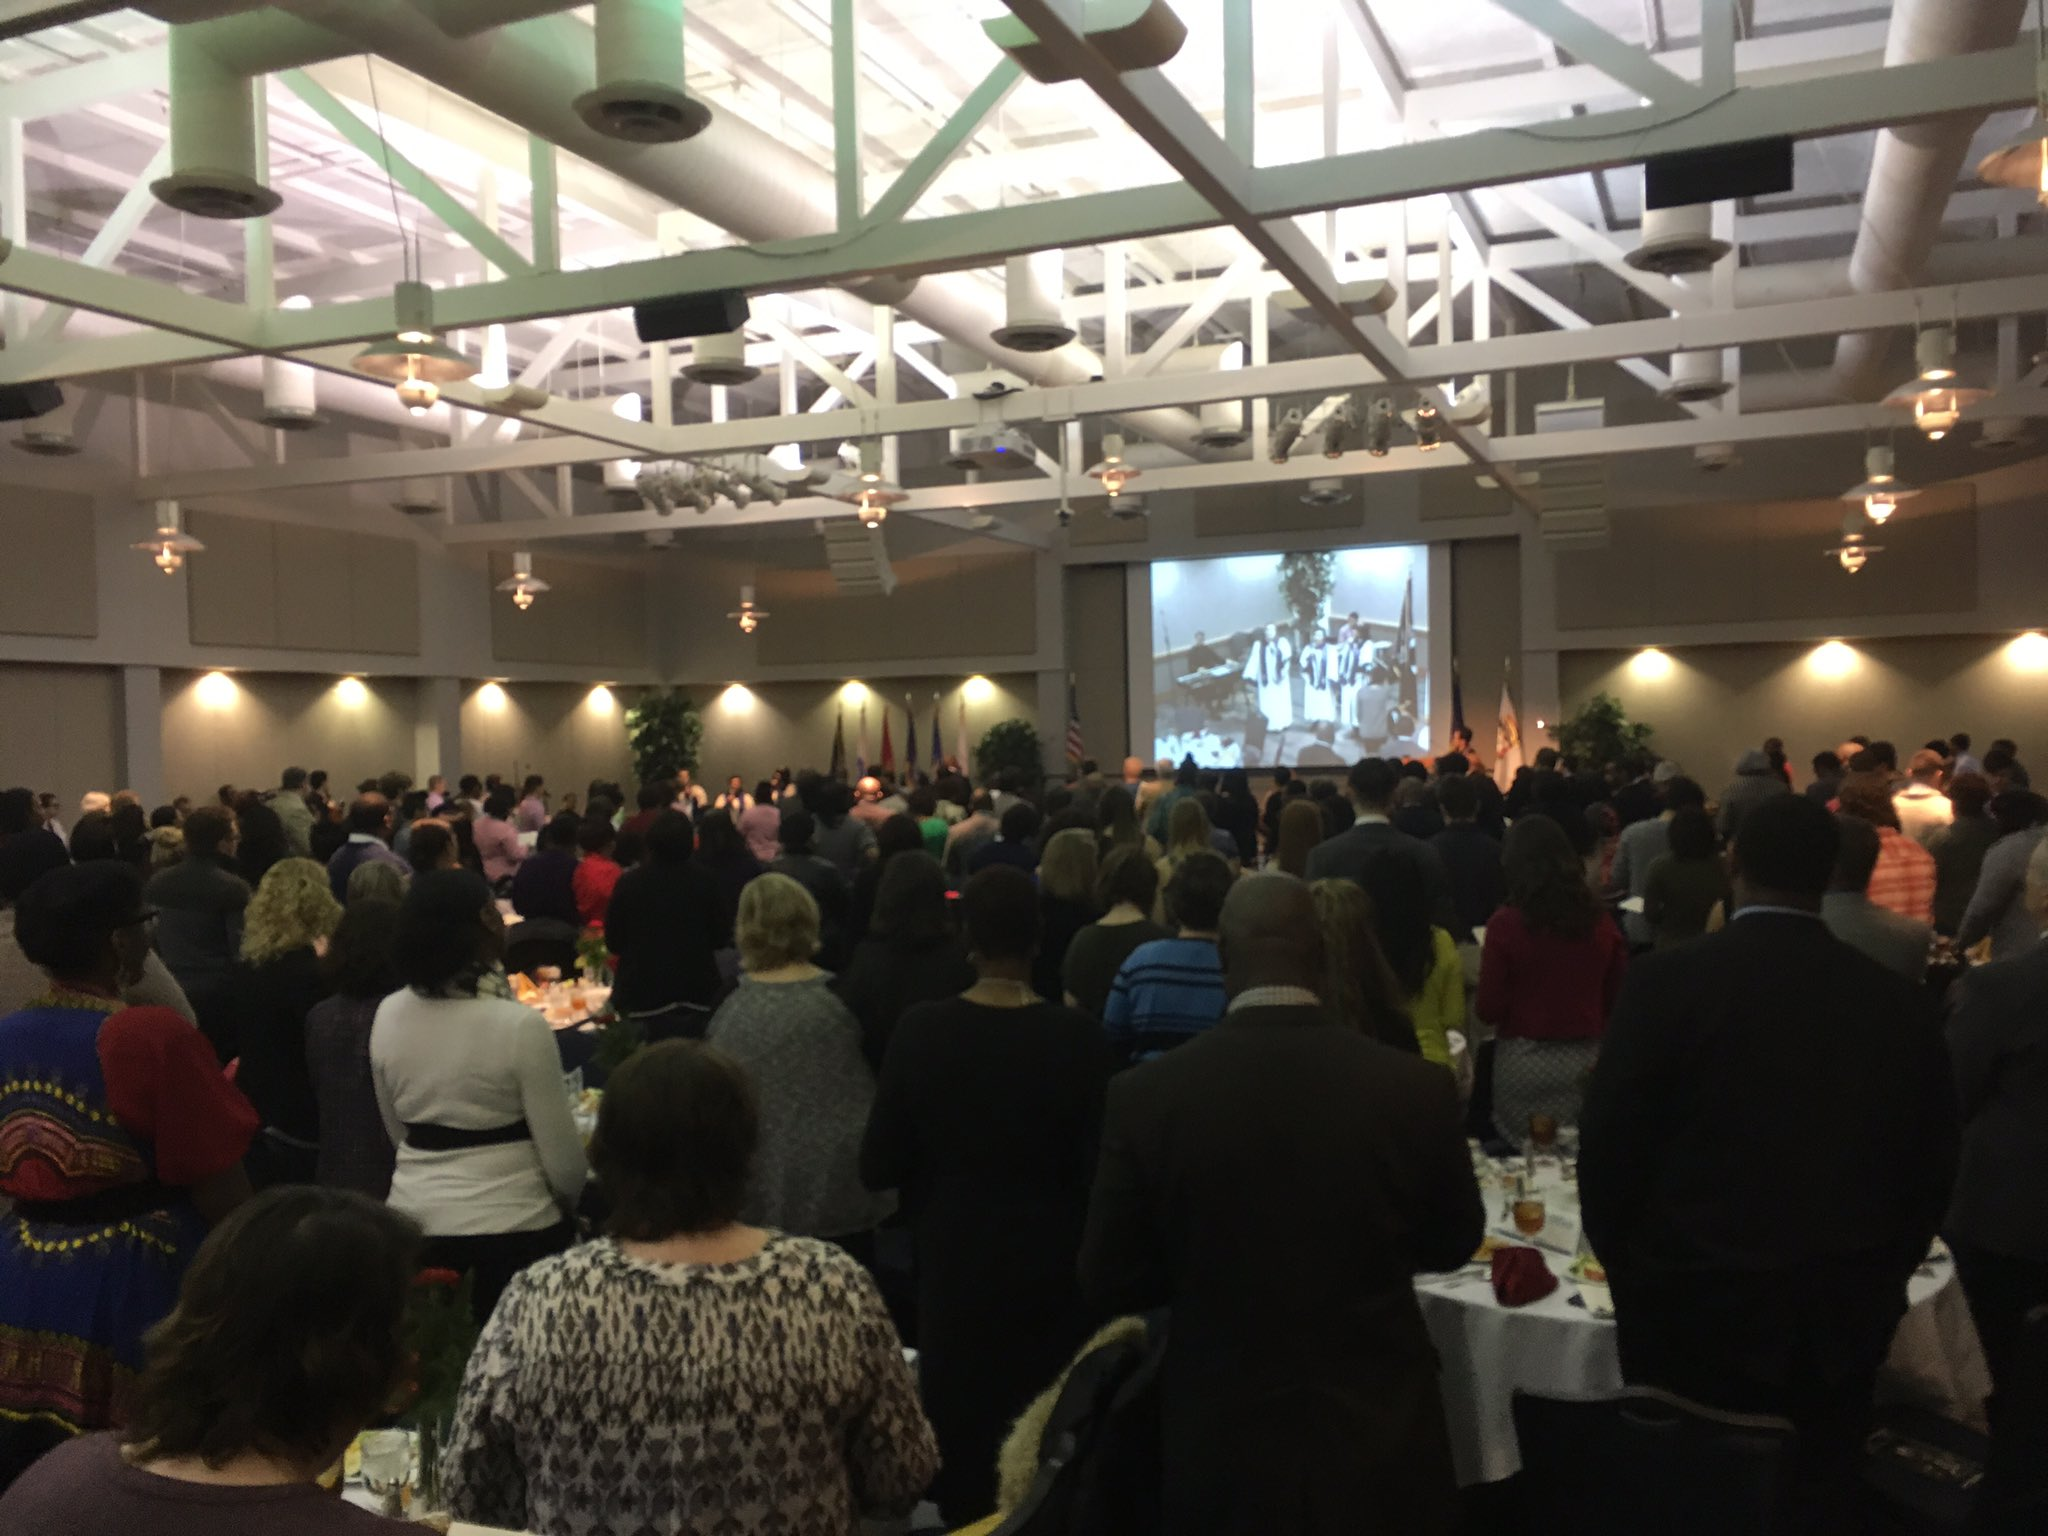 """Members of the Designed by Grace gospel choir leading the attendees in """"Lift Every Voice"""". #USIMLK https://t.co/MKw6ZfJEkm"""